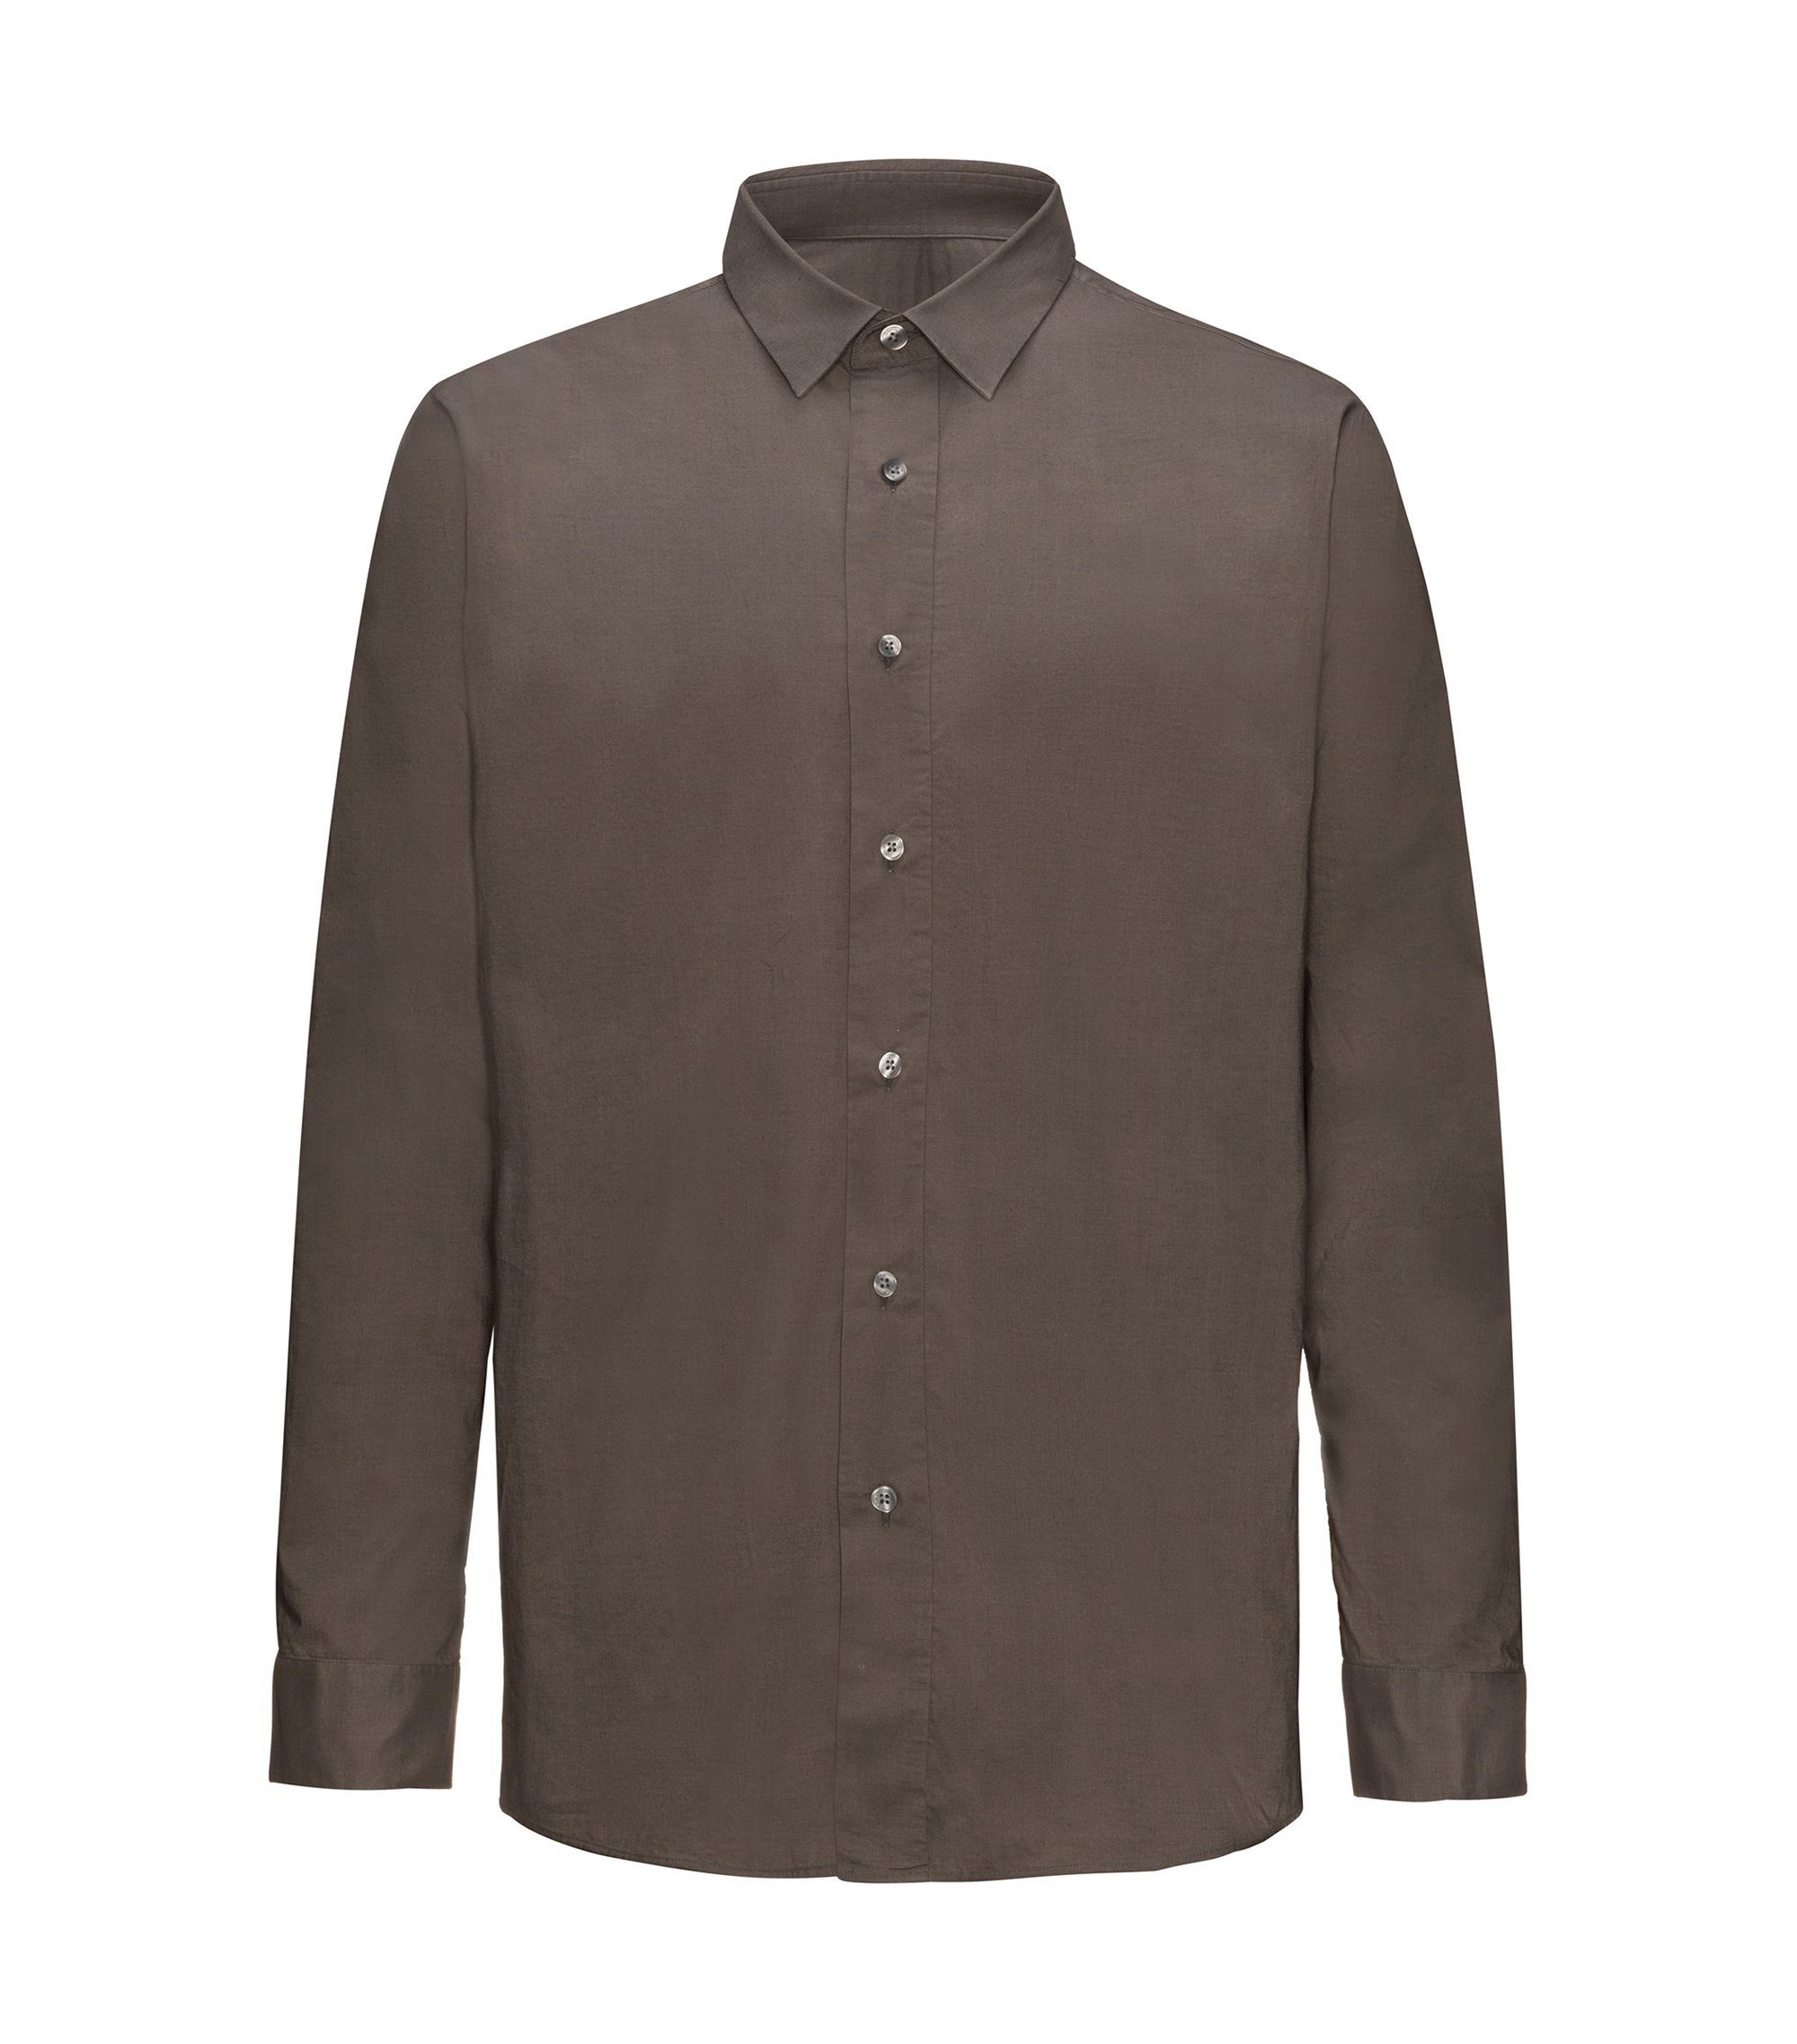 Cotton Sport Shirt, Relaxed Fit | Emilton, Brown